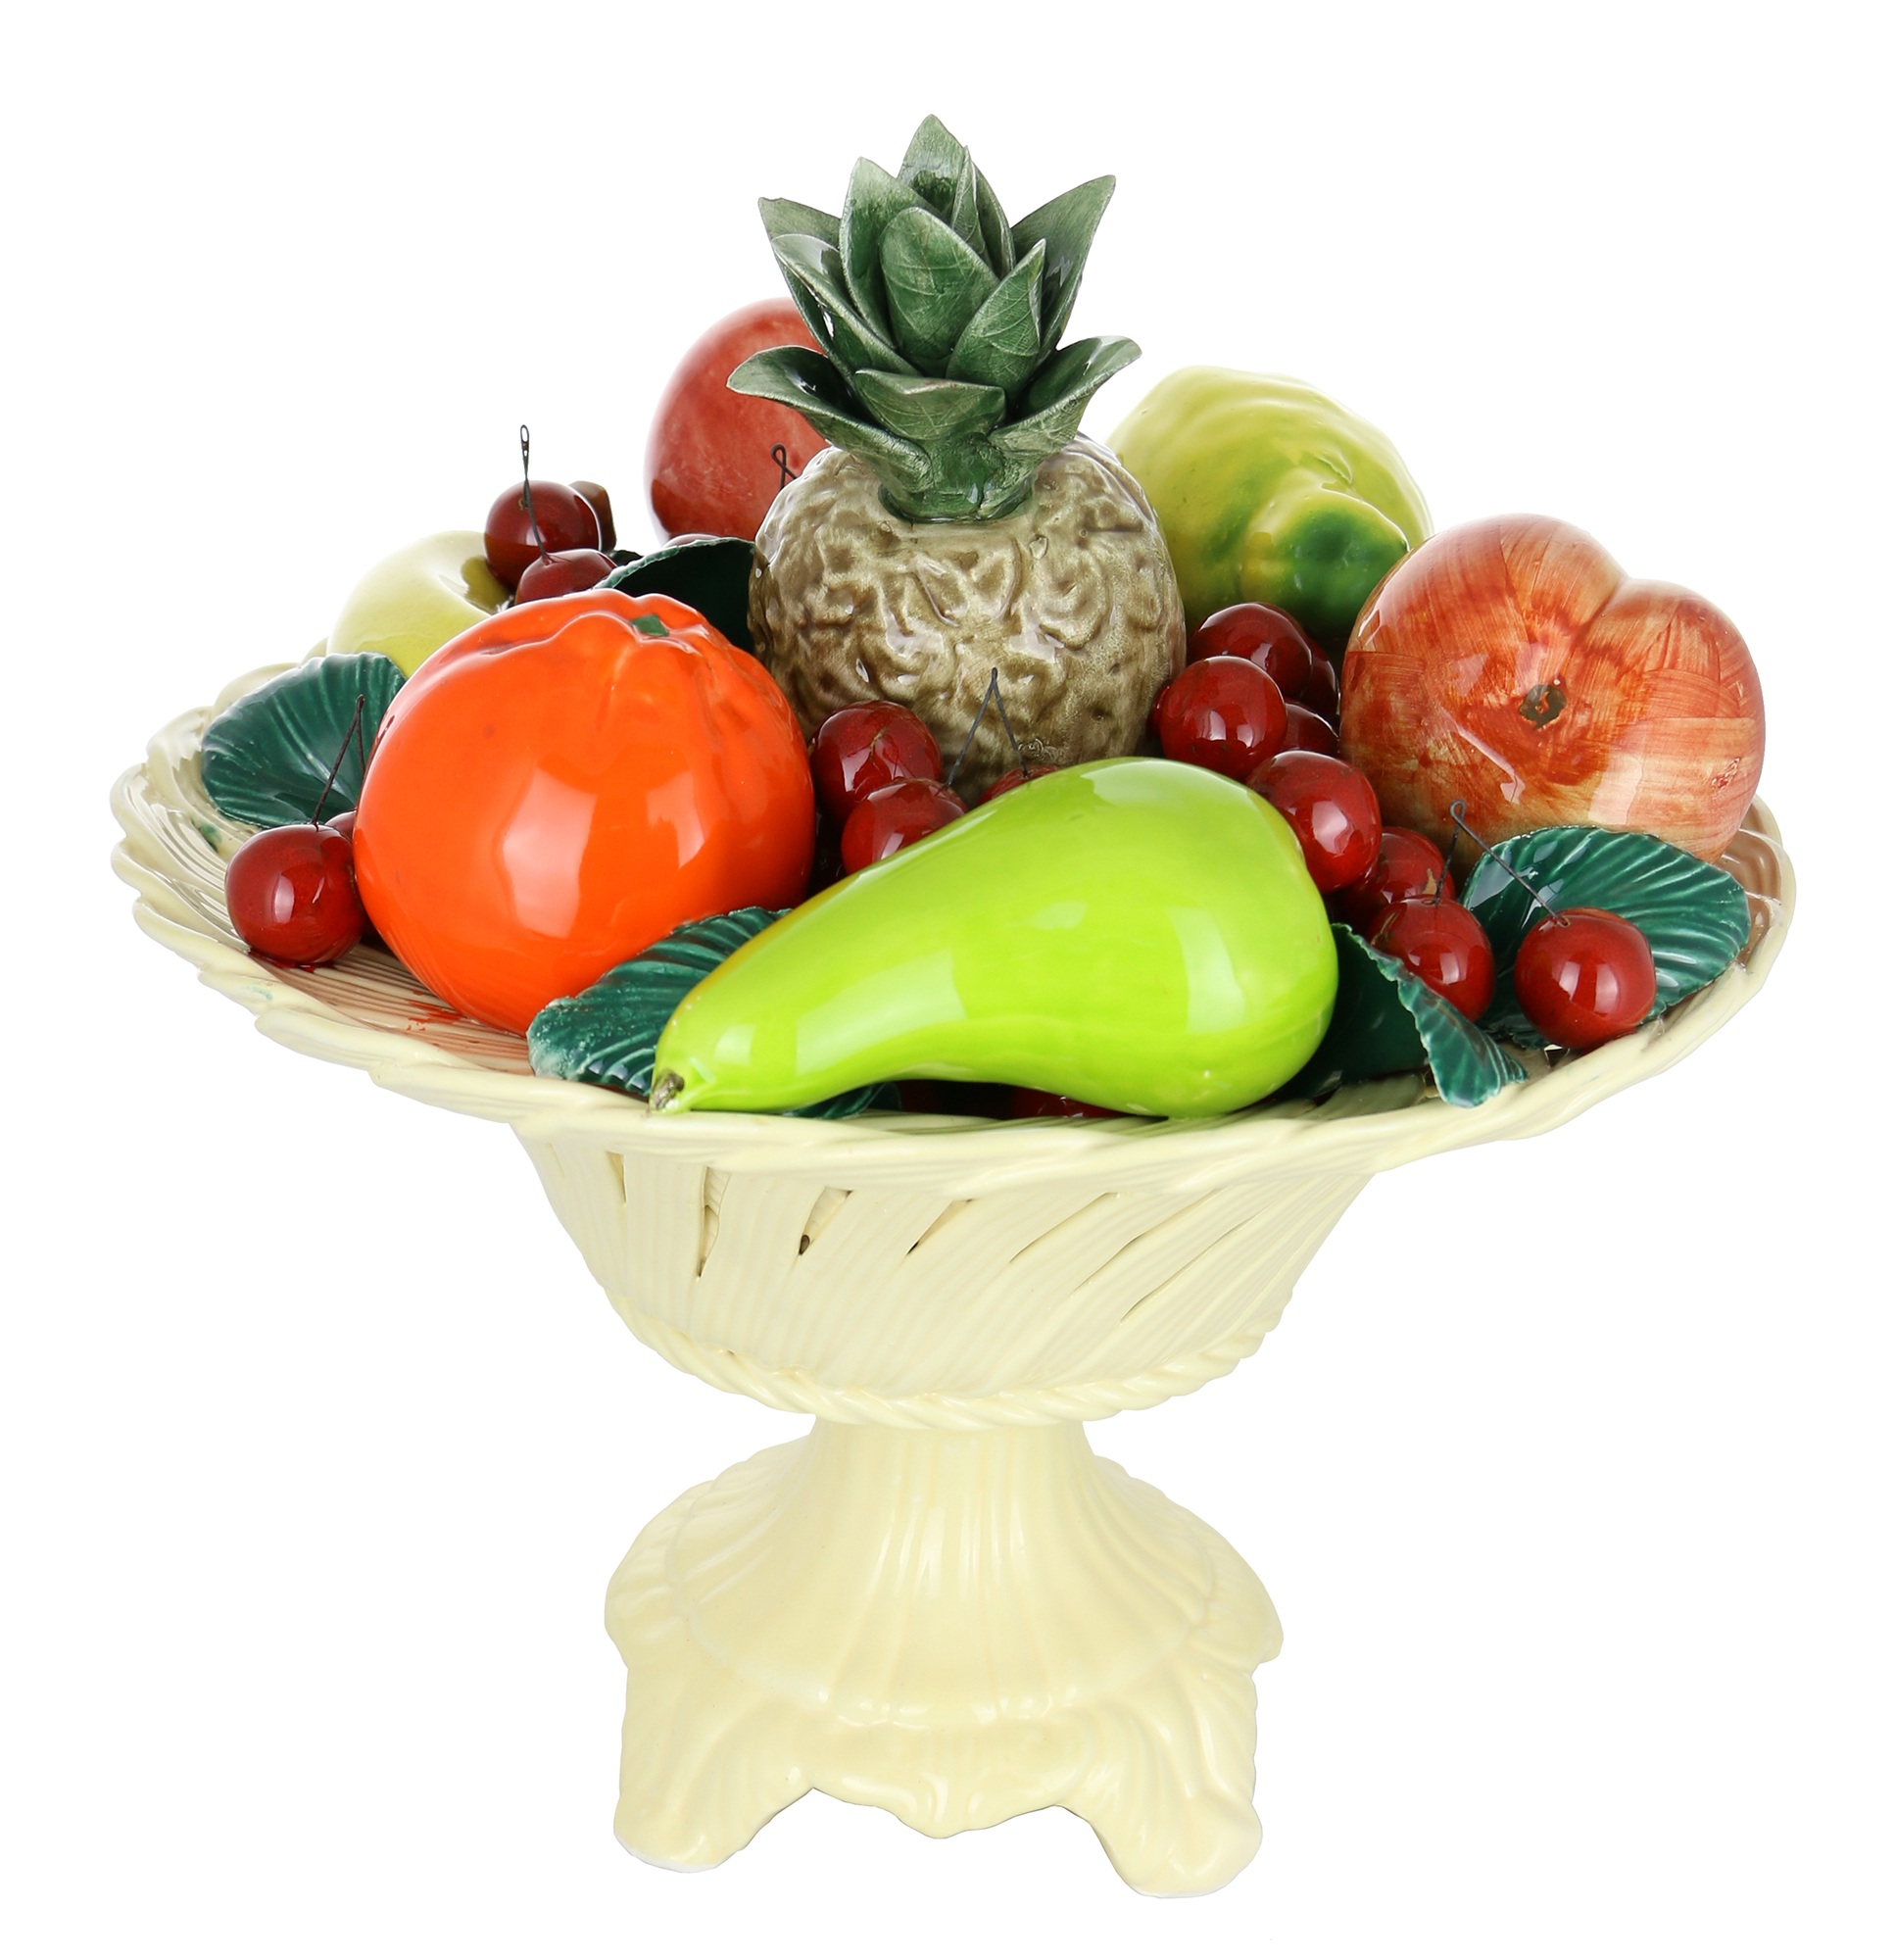 15X14 FRUIT BASKET ON BASE